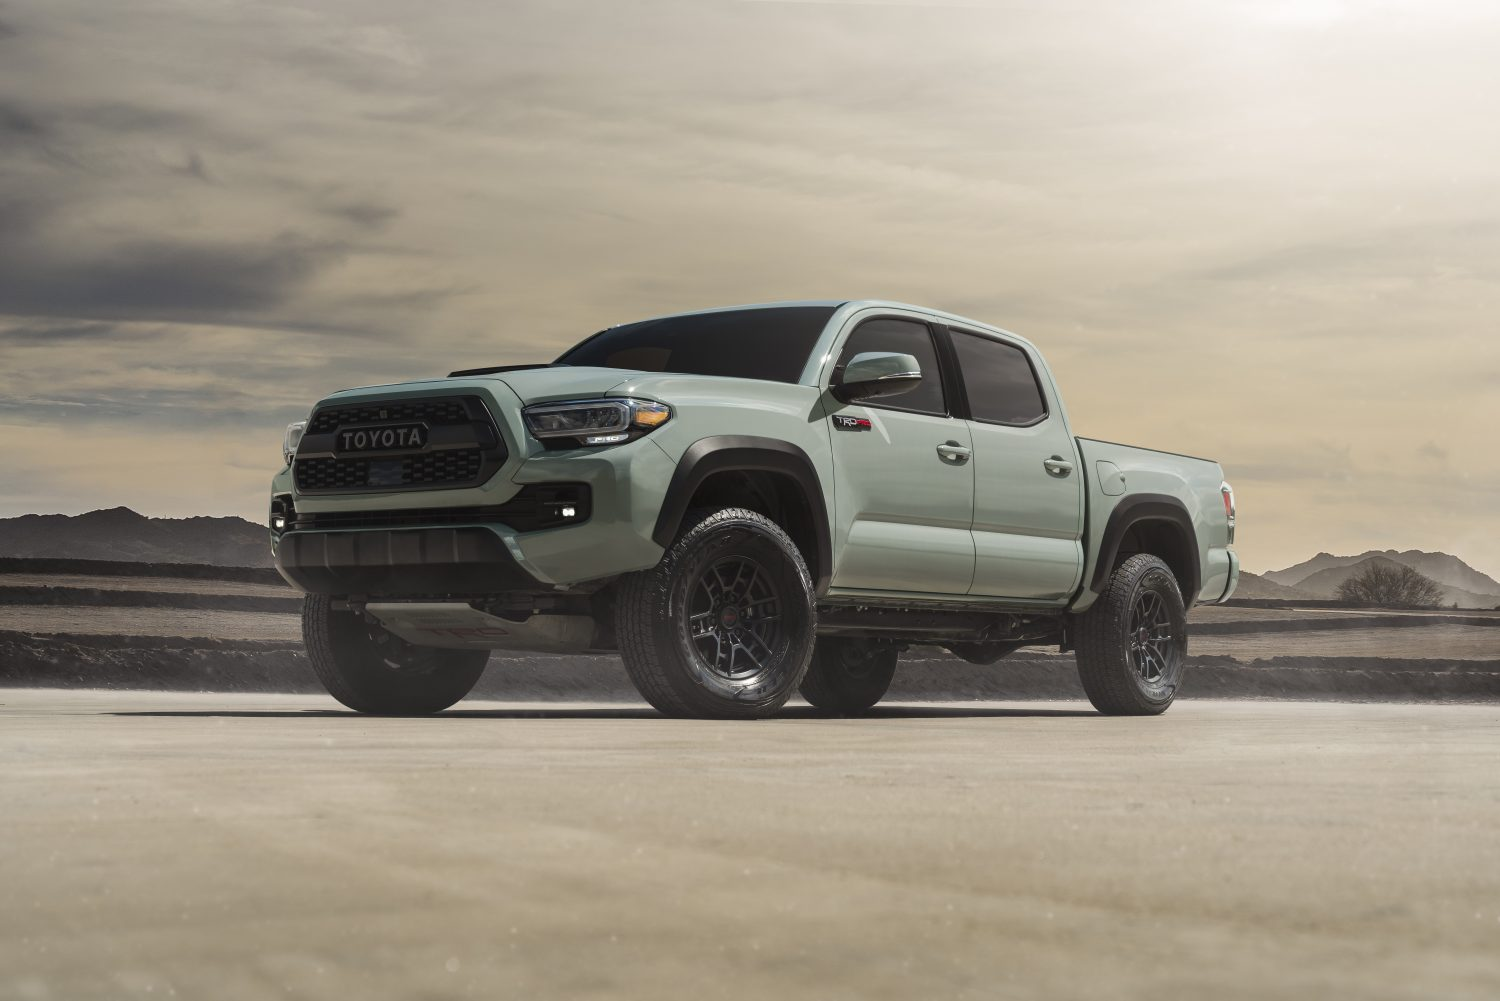 tacoma rolls out pricing and special editions for 2021 model year passport toyota blog tacoma rolls out pricing and special